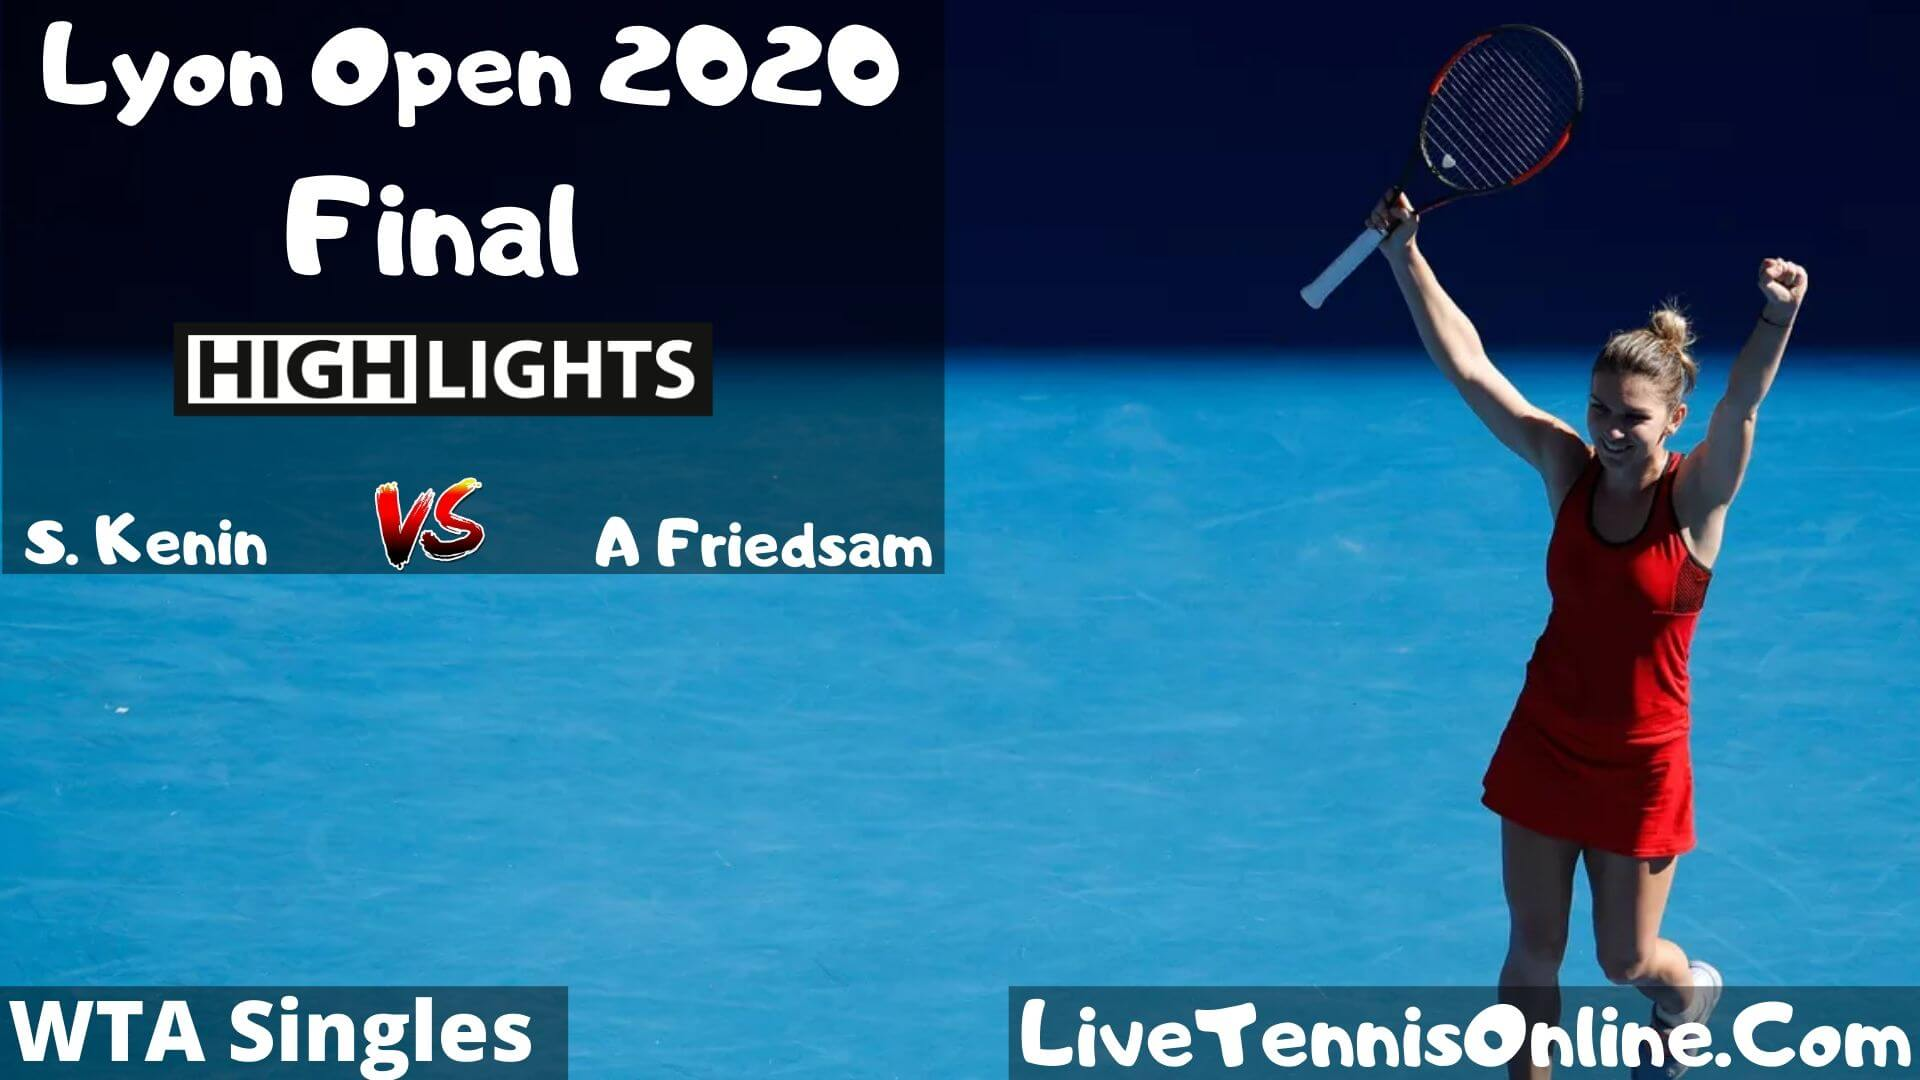 S. Kenin Vs A Friedsam Highlights 2020 Final Lyon Open